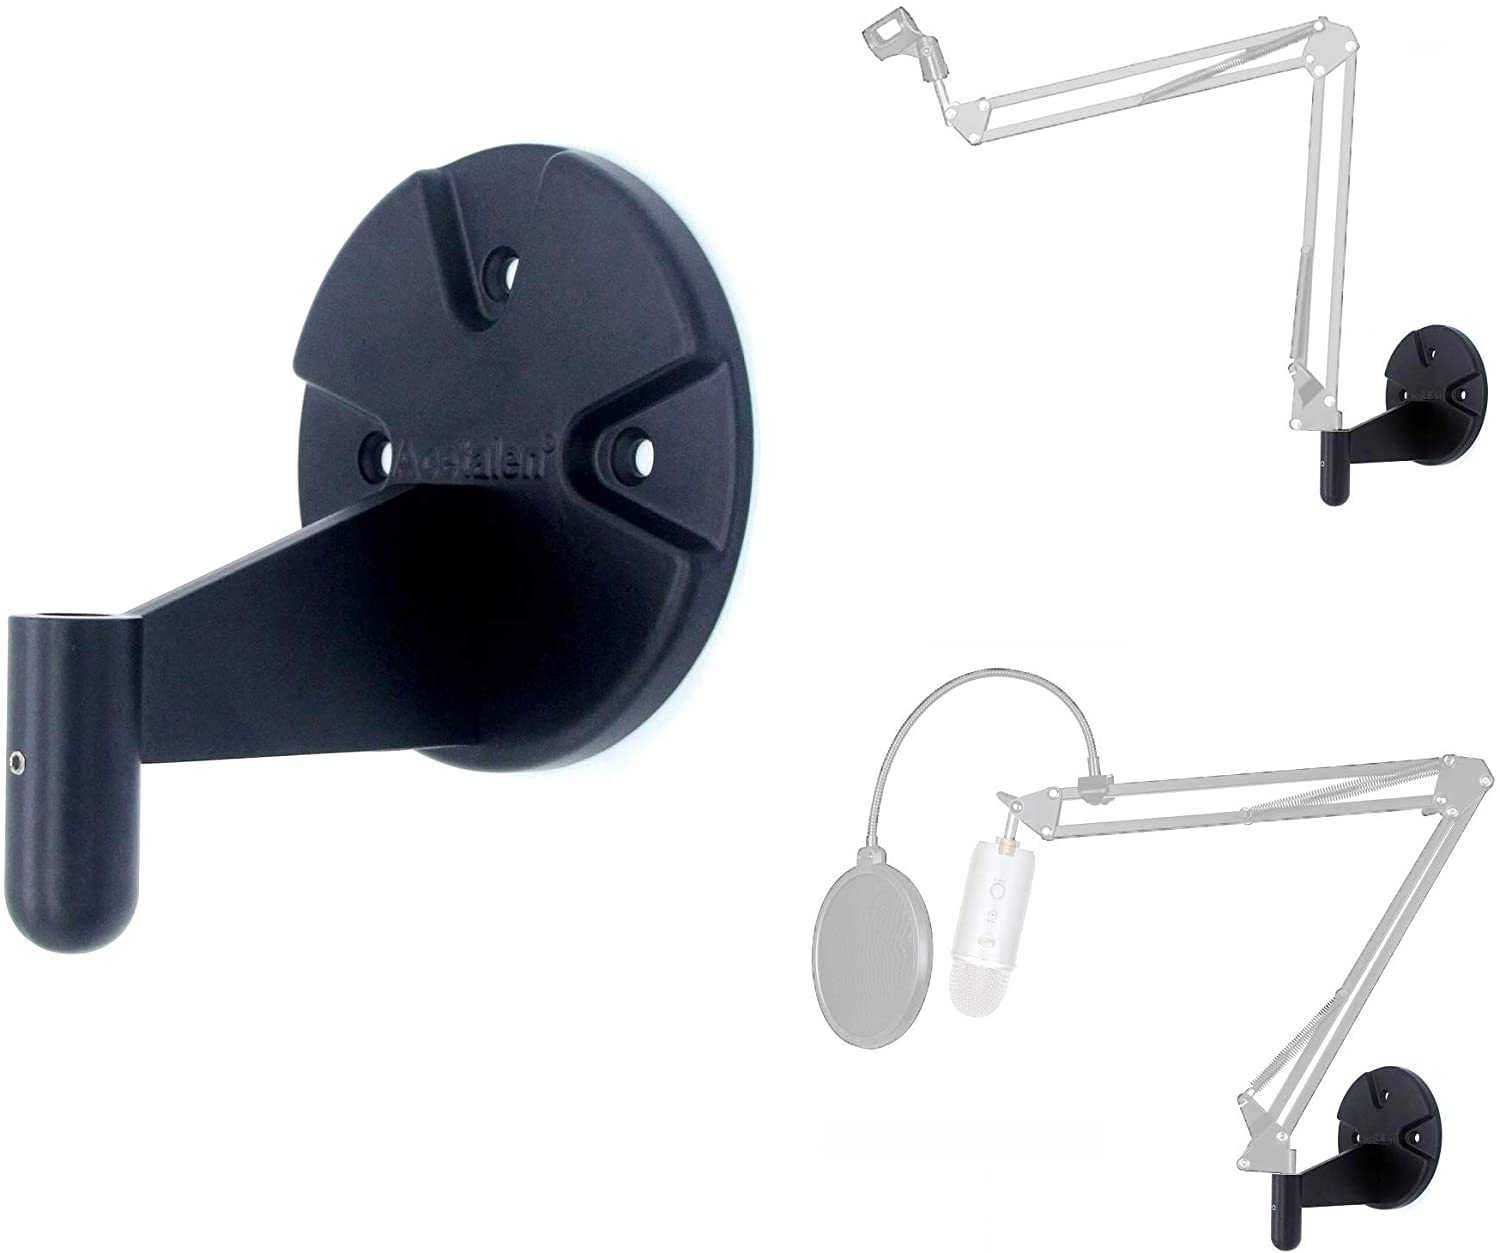 Wall Mount for Suspension Boom Arm, Round Plate and Attaching Holder Piece Compatible with Microphone Stand,Mobile phone Stand,Webcam Stand